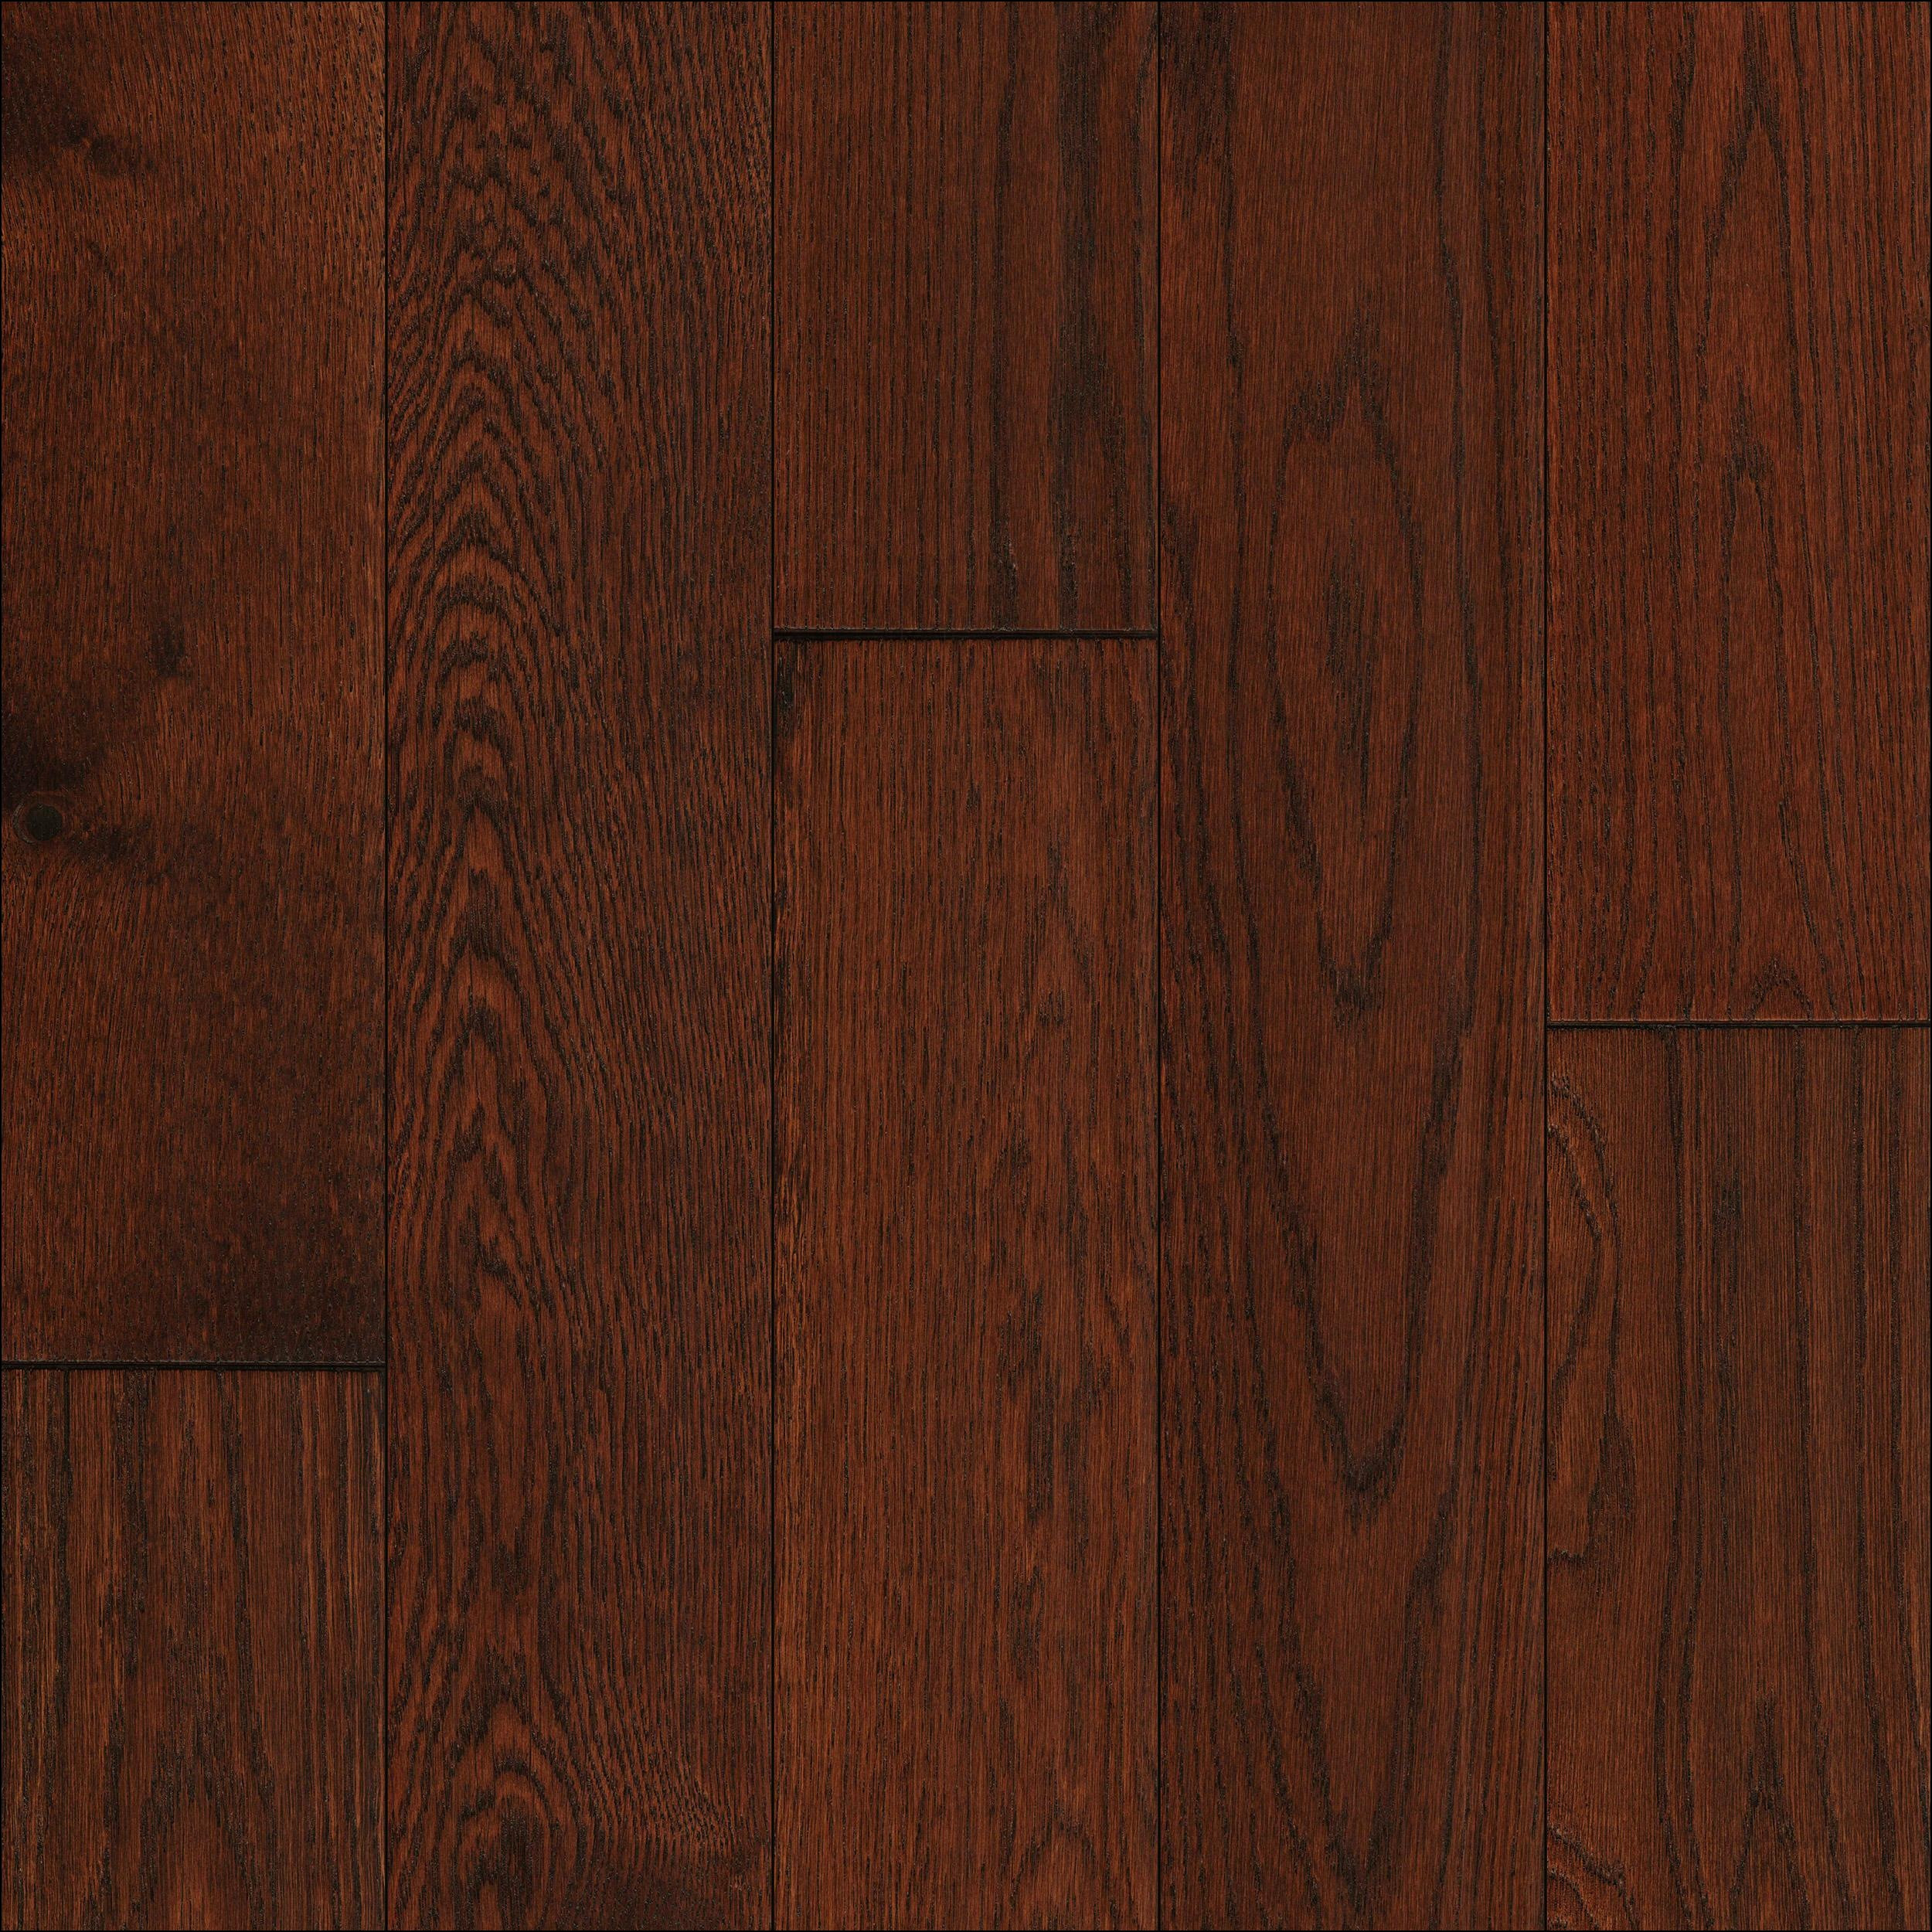 bruce maple caramel hardwood flooring of wide plank flooring ideas throughout wide plank dark wood flooring collection timber hardwood white oak sorrell 5 wide solid hardwood